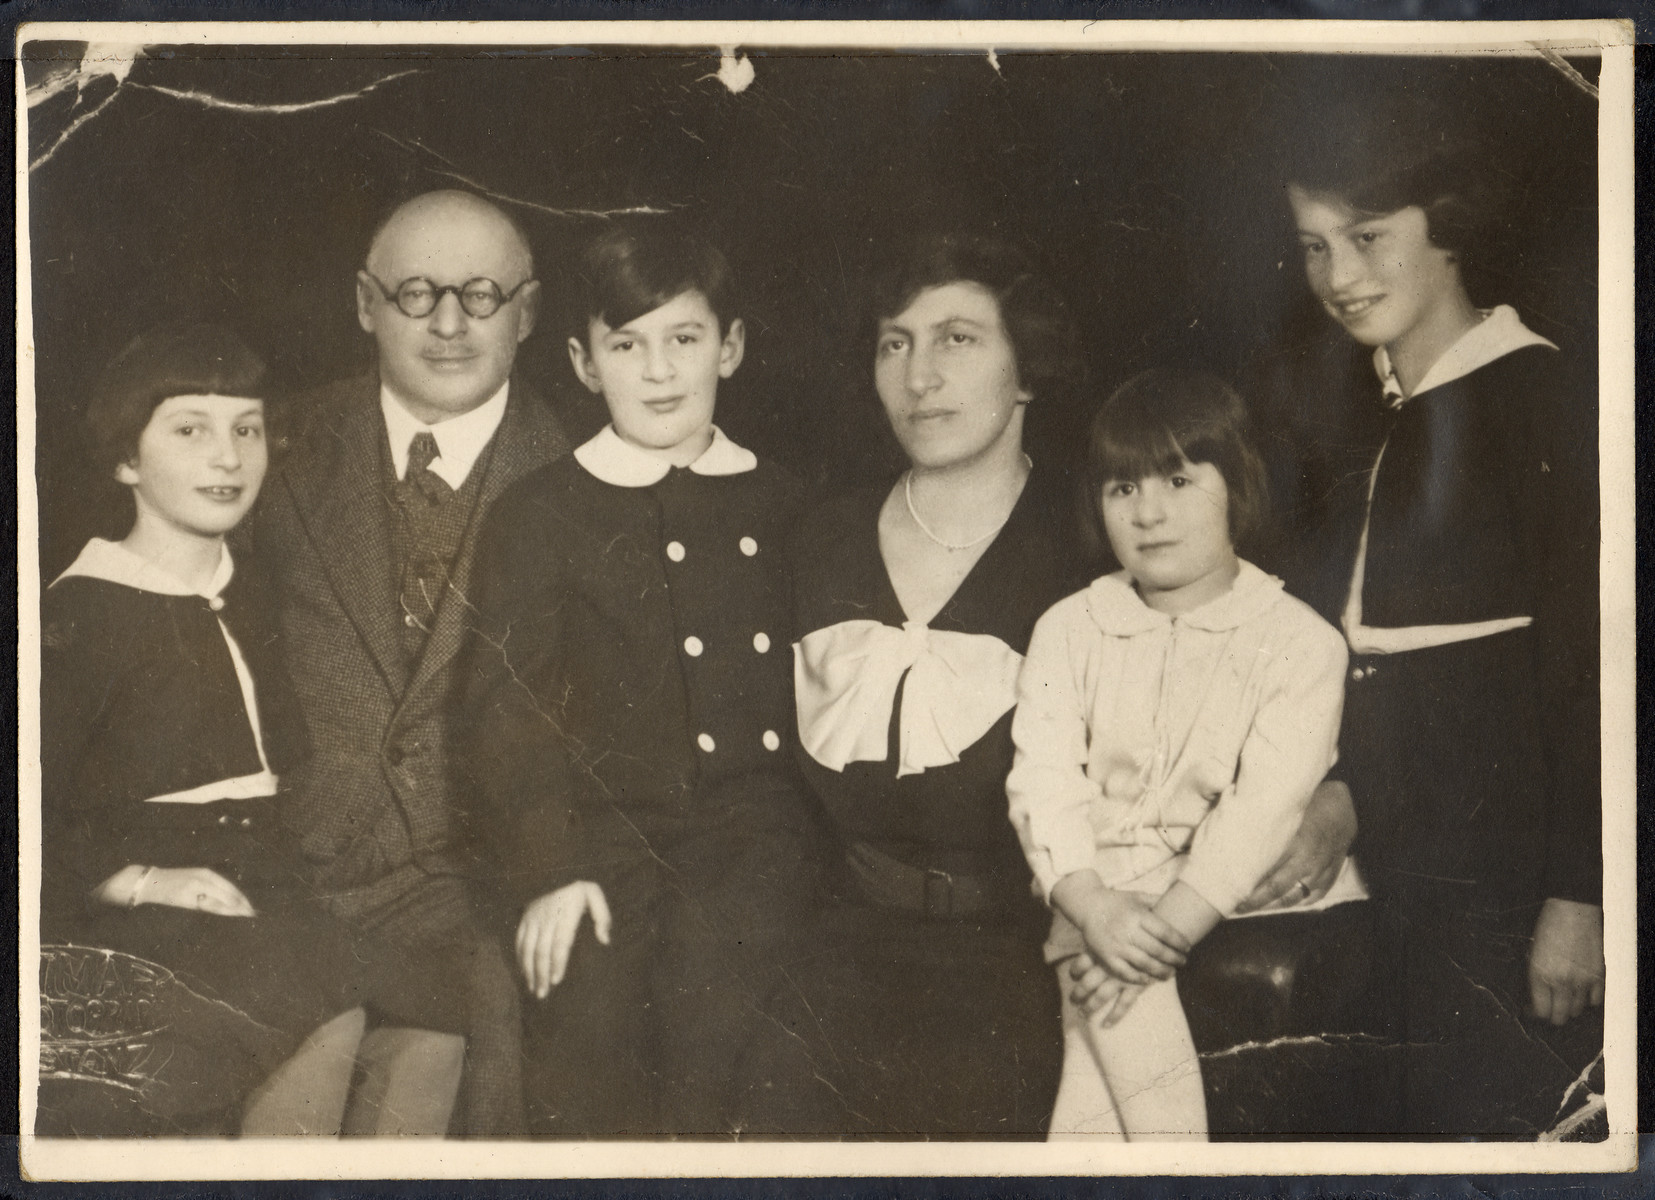 The Schwarzhaupt family sits for a studio portrait in 1935, right before the oldest daughters, Rose and Hanni, immigrate to the United States.  Pictured from the left are Hanni, Albert, Max, Hella, Ruth and Rose.